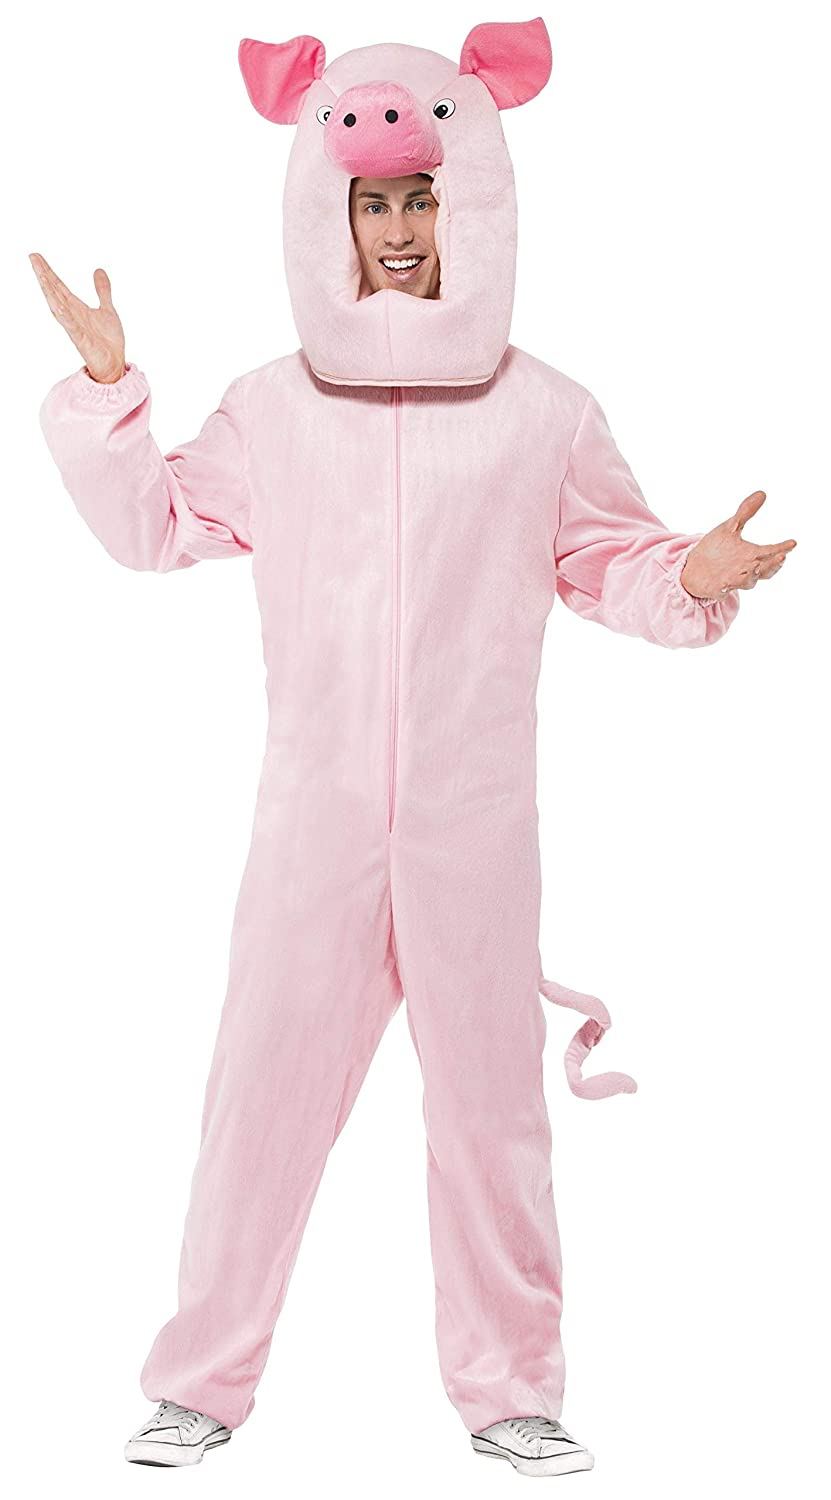 Smiffy's Men's Pig Costume Bodysuit and Hood Pink One Size RH Smith & Sons LTD 43814